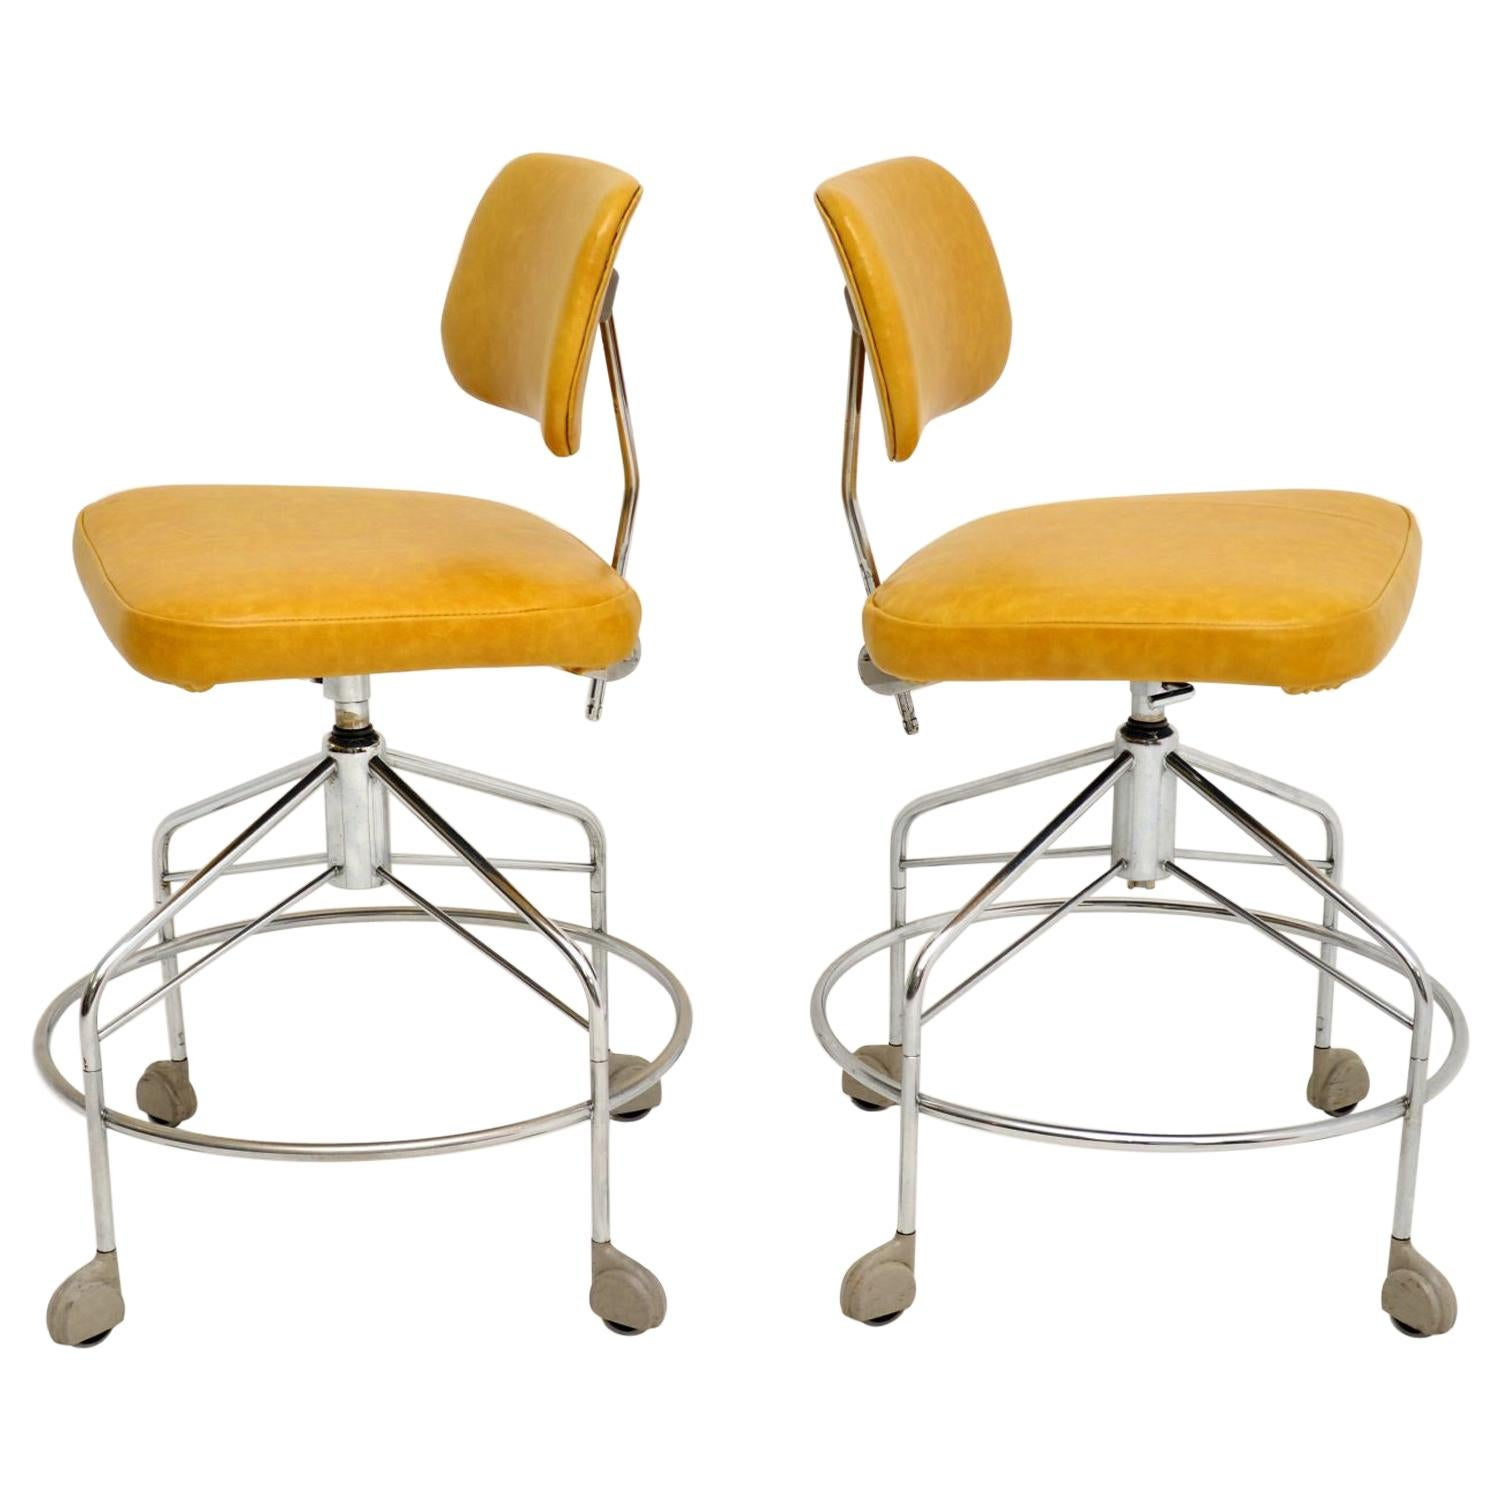 Pair of Danish Vintage Leather Swivel Draughtsman Chairs by Danflex